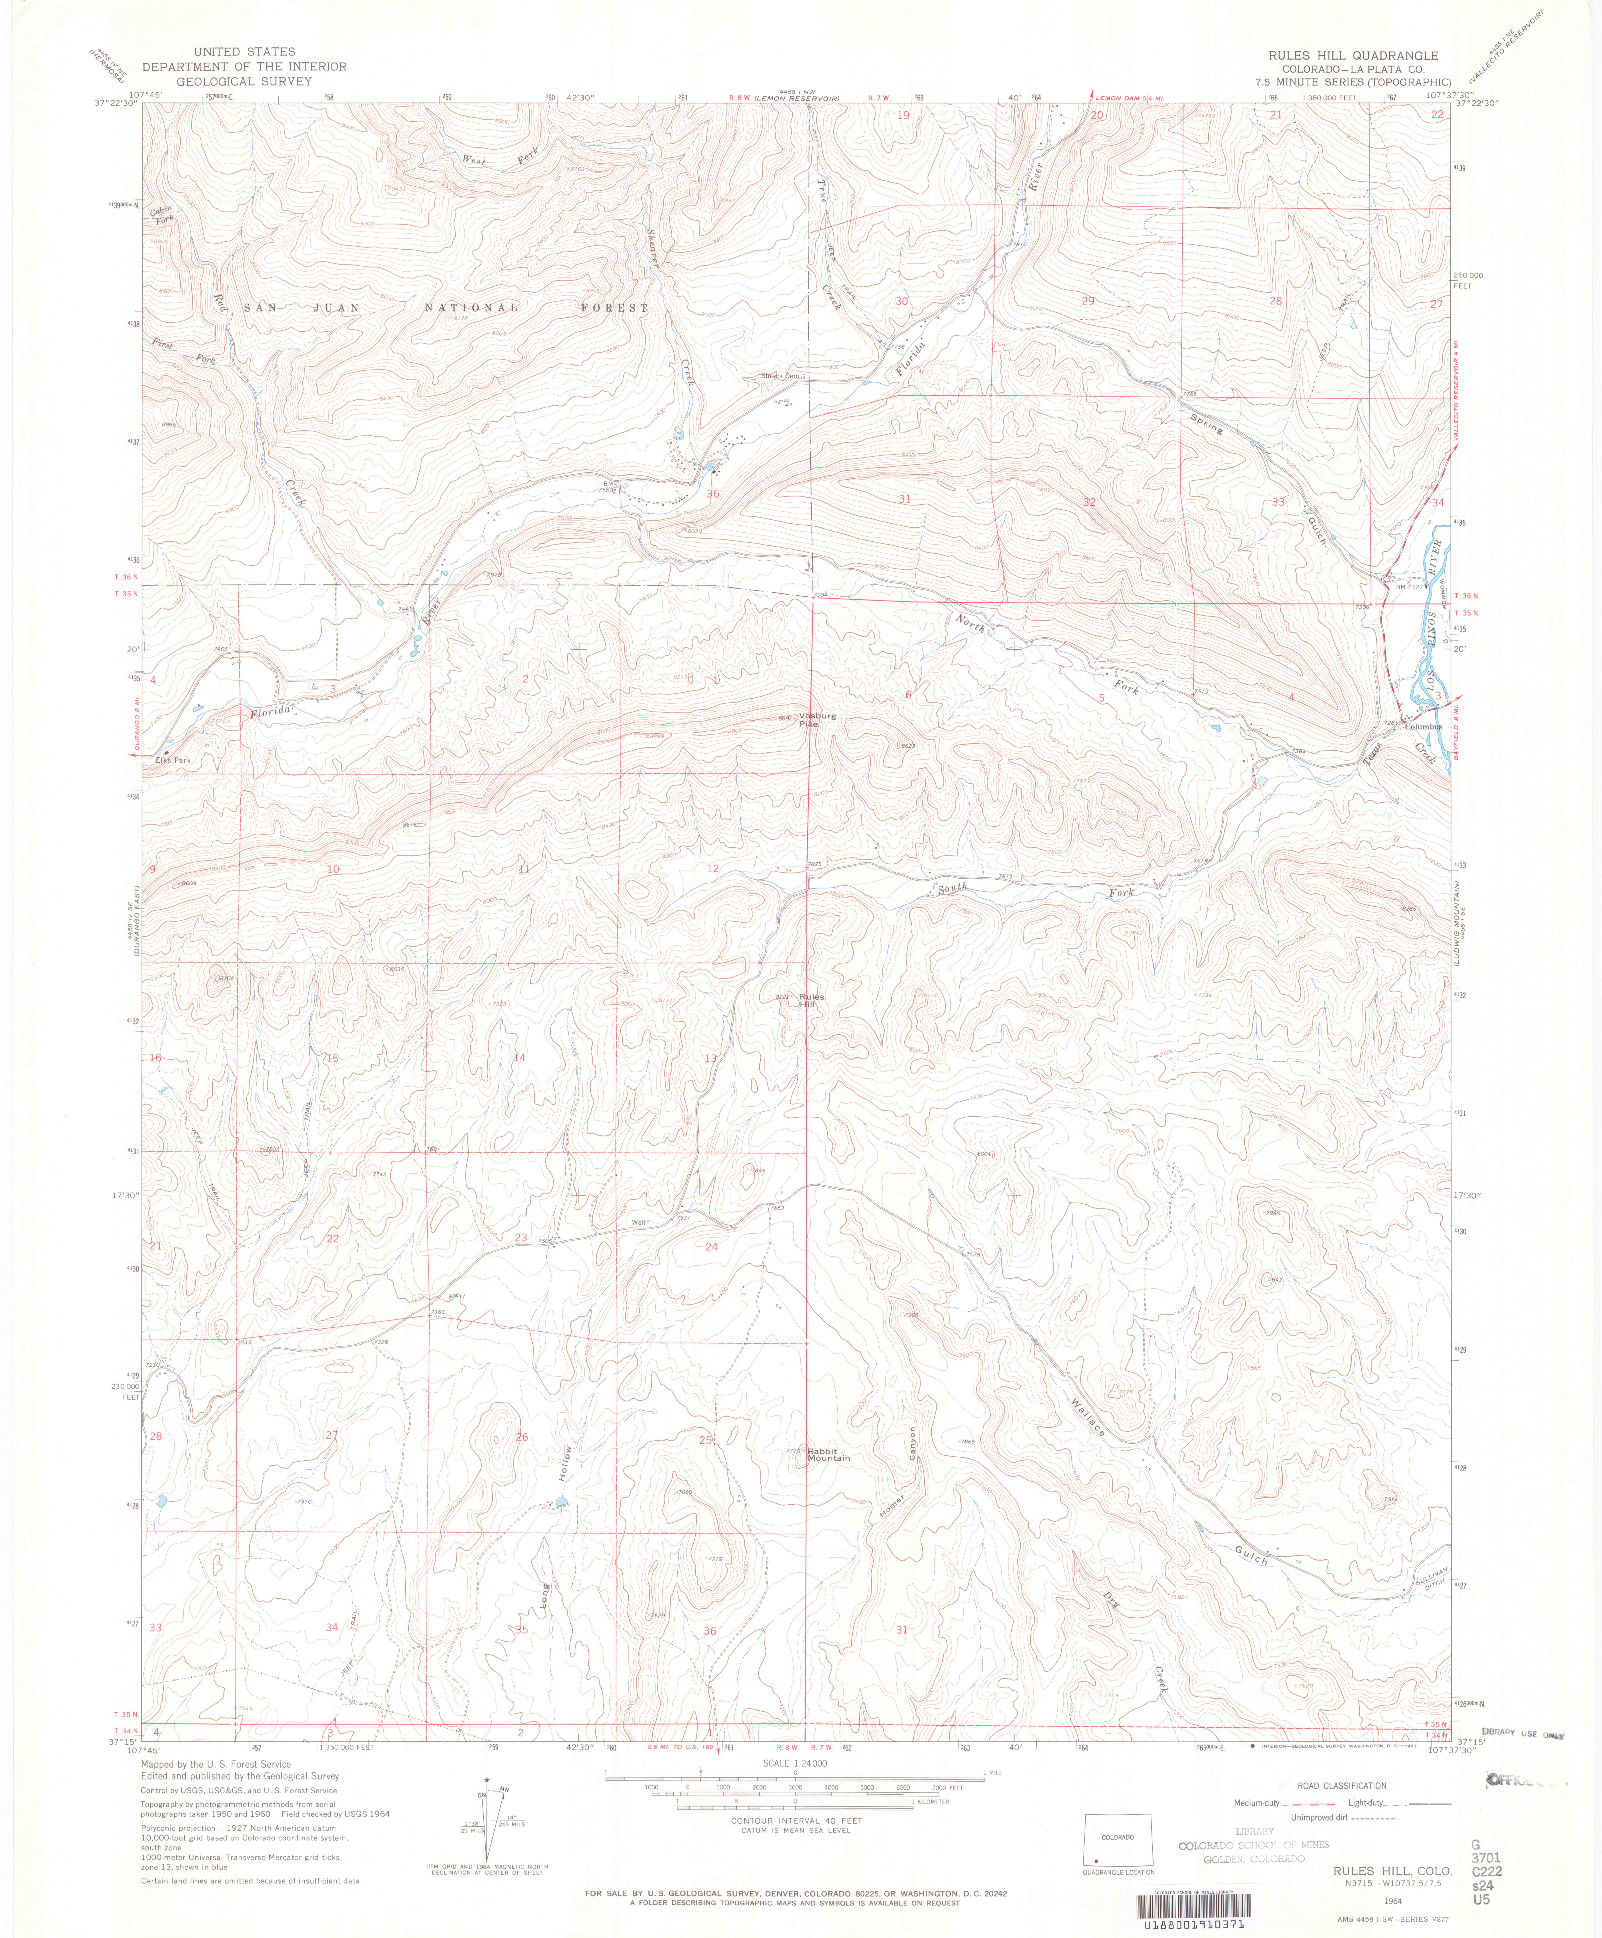 USGS 1:24000-SCALE QUADRANGLE FOR RULES HILL, CO 1964